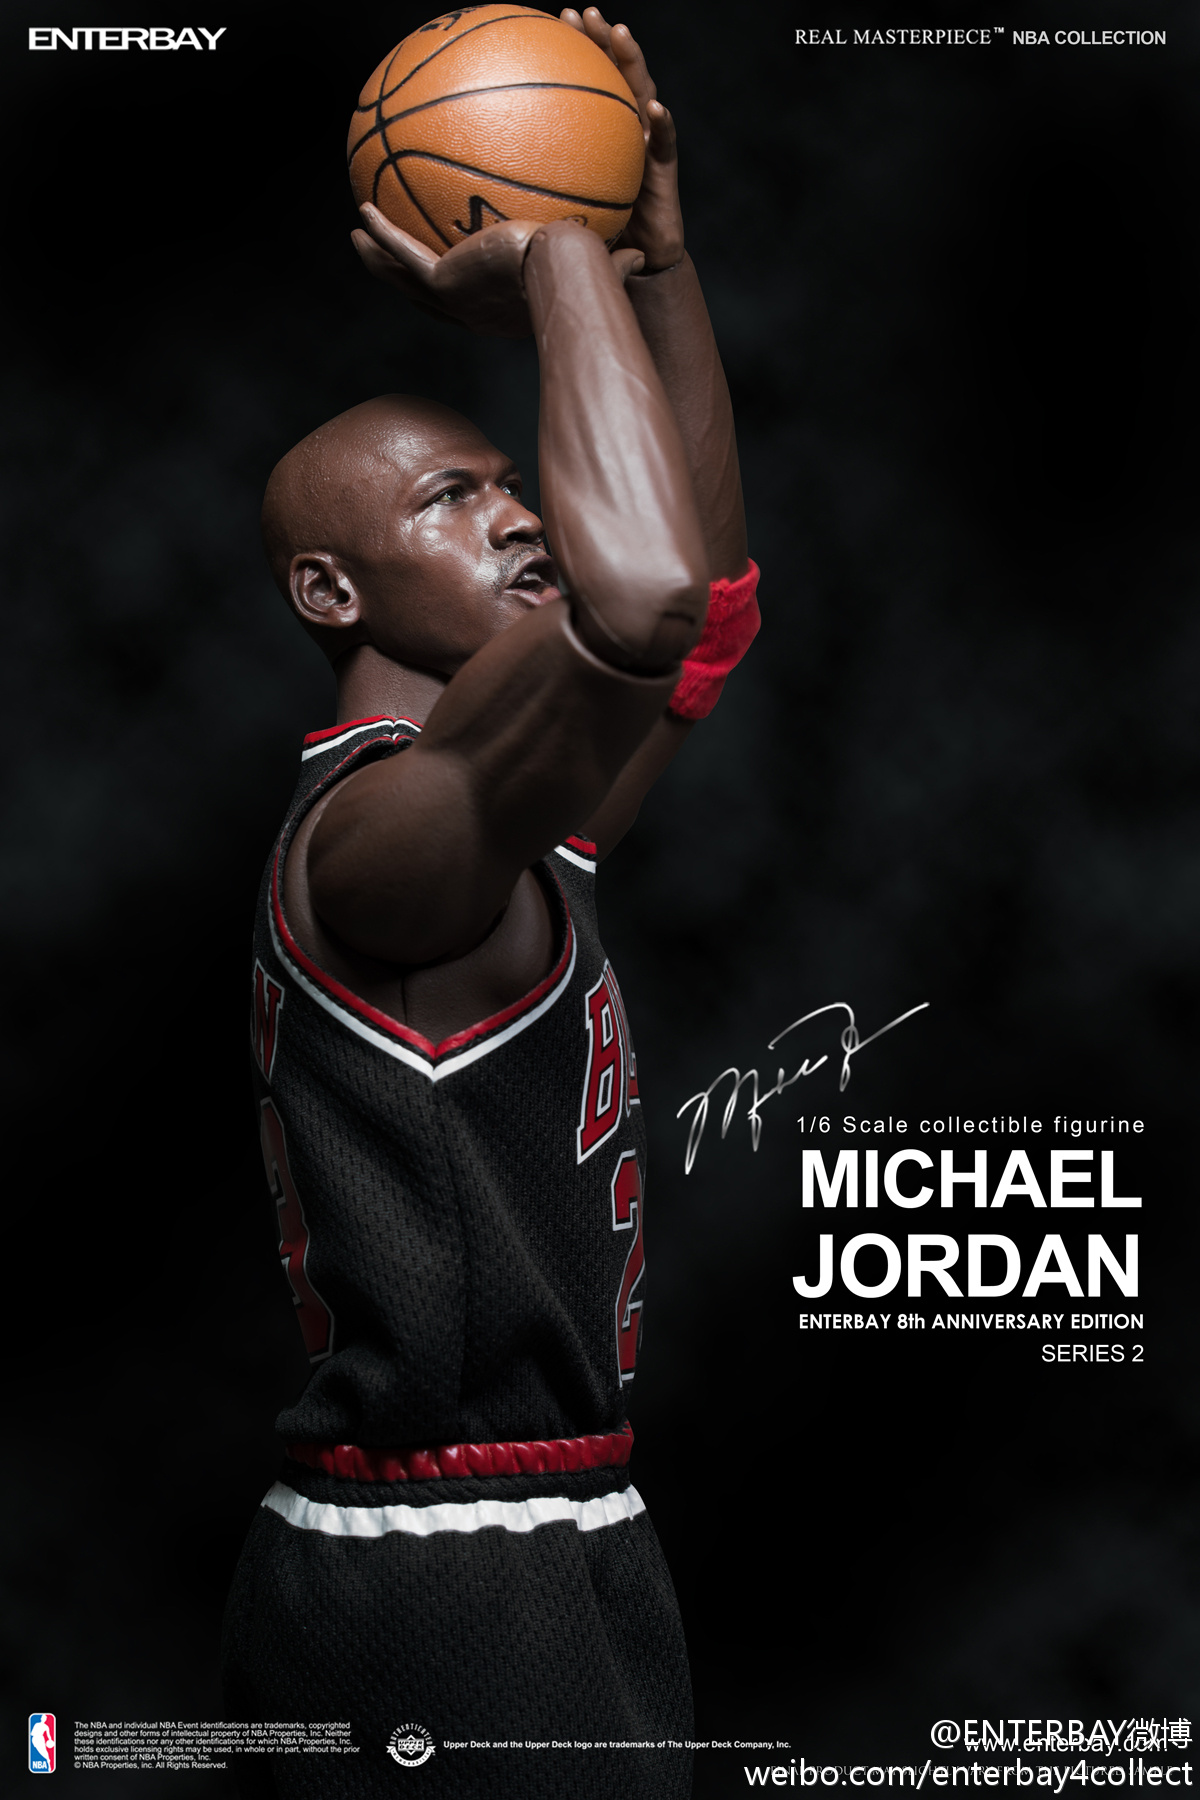 [ENTERBAY] NBA Real Masterpiece - Michael Jordan | Series 2 - 8th Anniversary Edition 685ebd96gw1e6ni9ua56bj20xc1e0am9